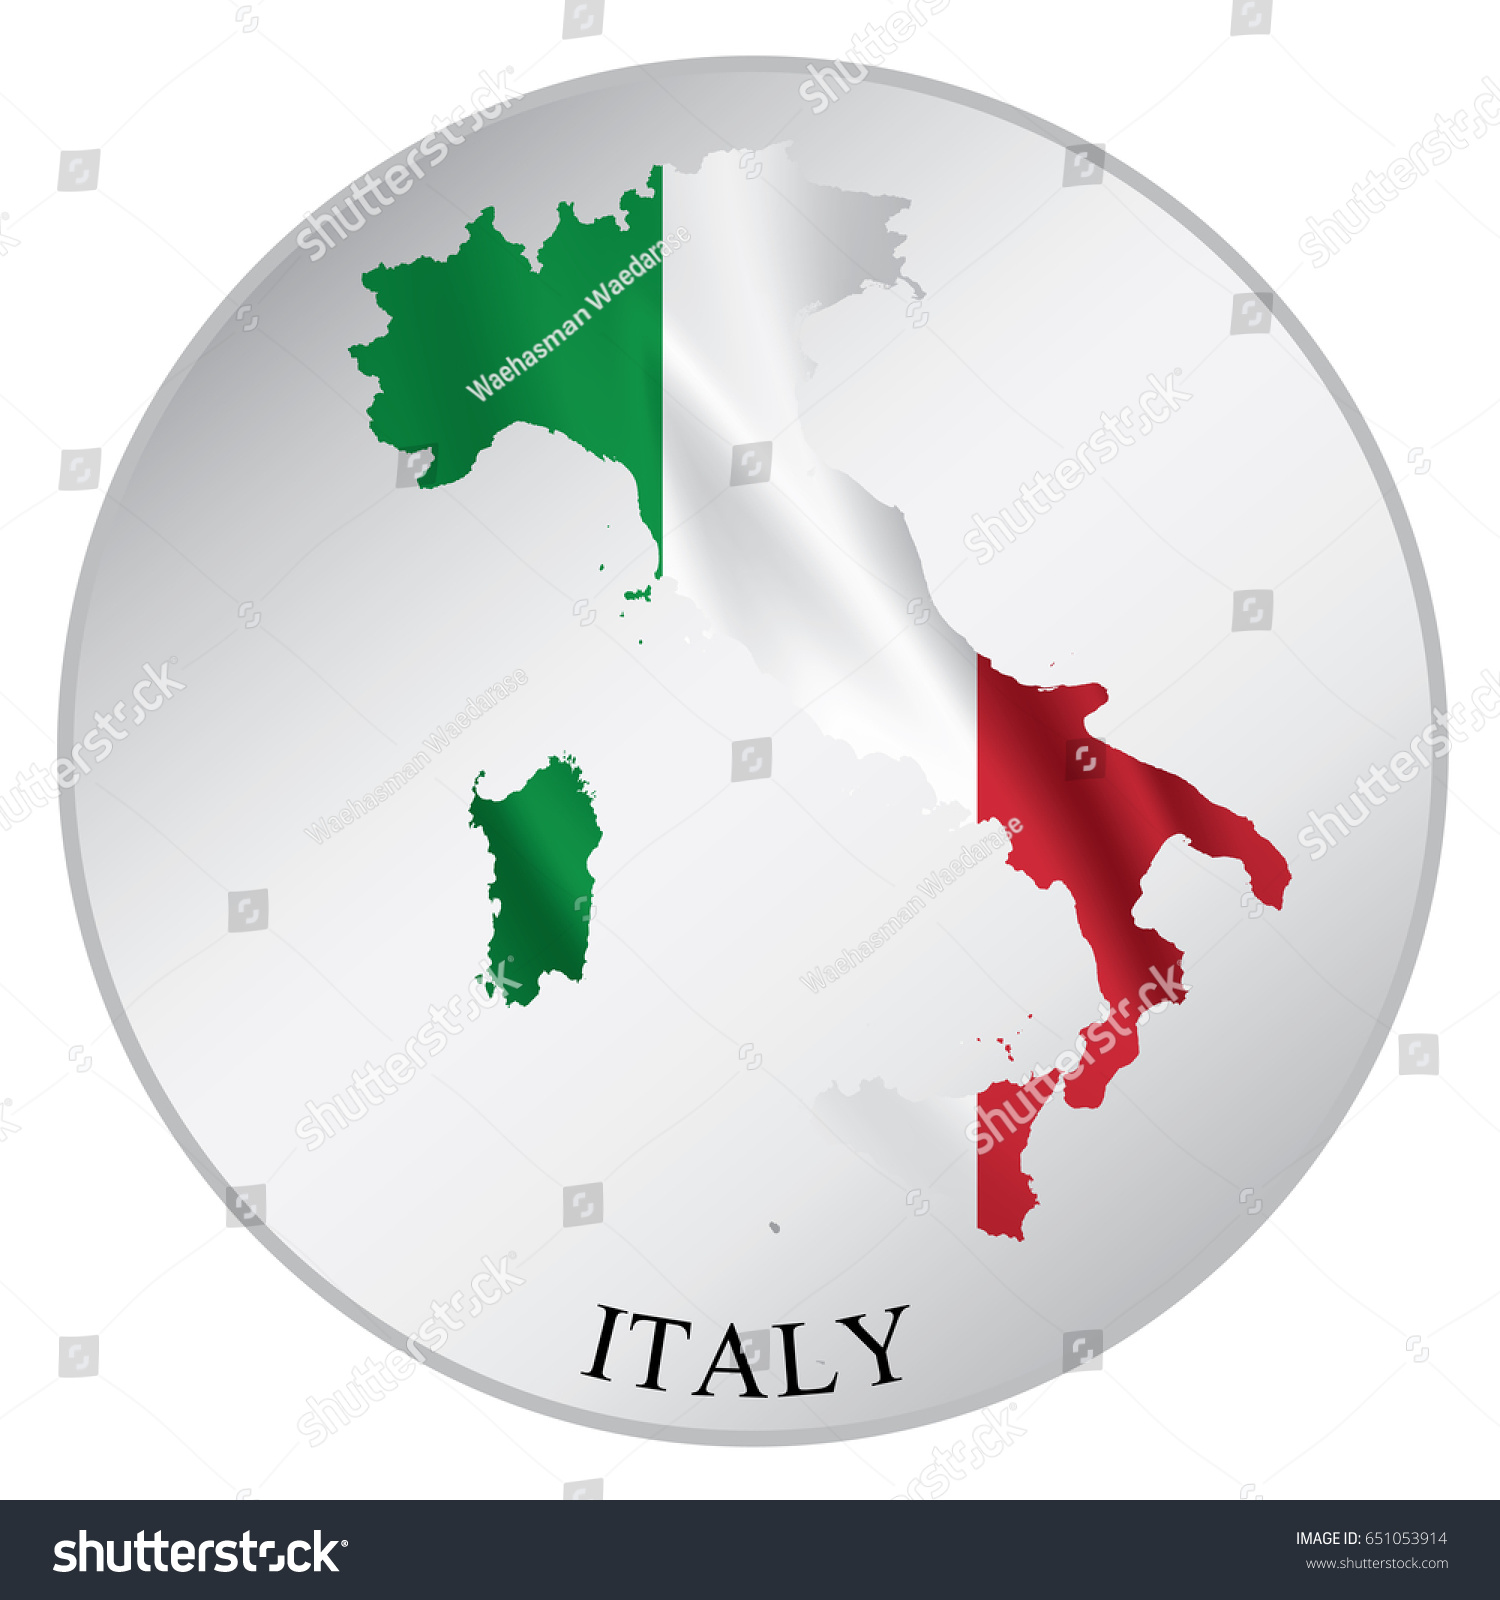 Italy Vector Sticker Flag Map Label Stock Vector 651053914